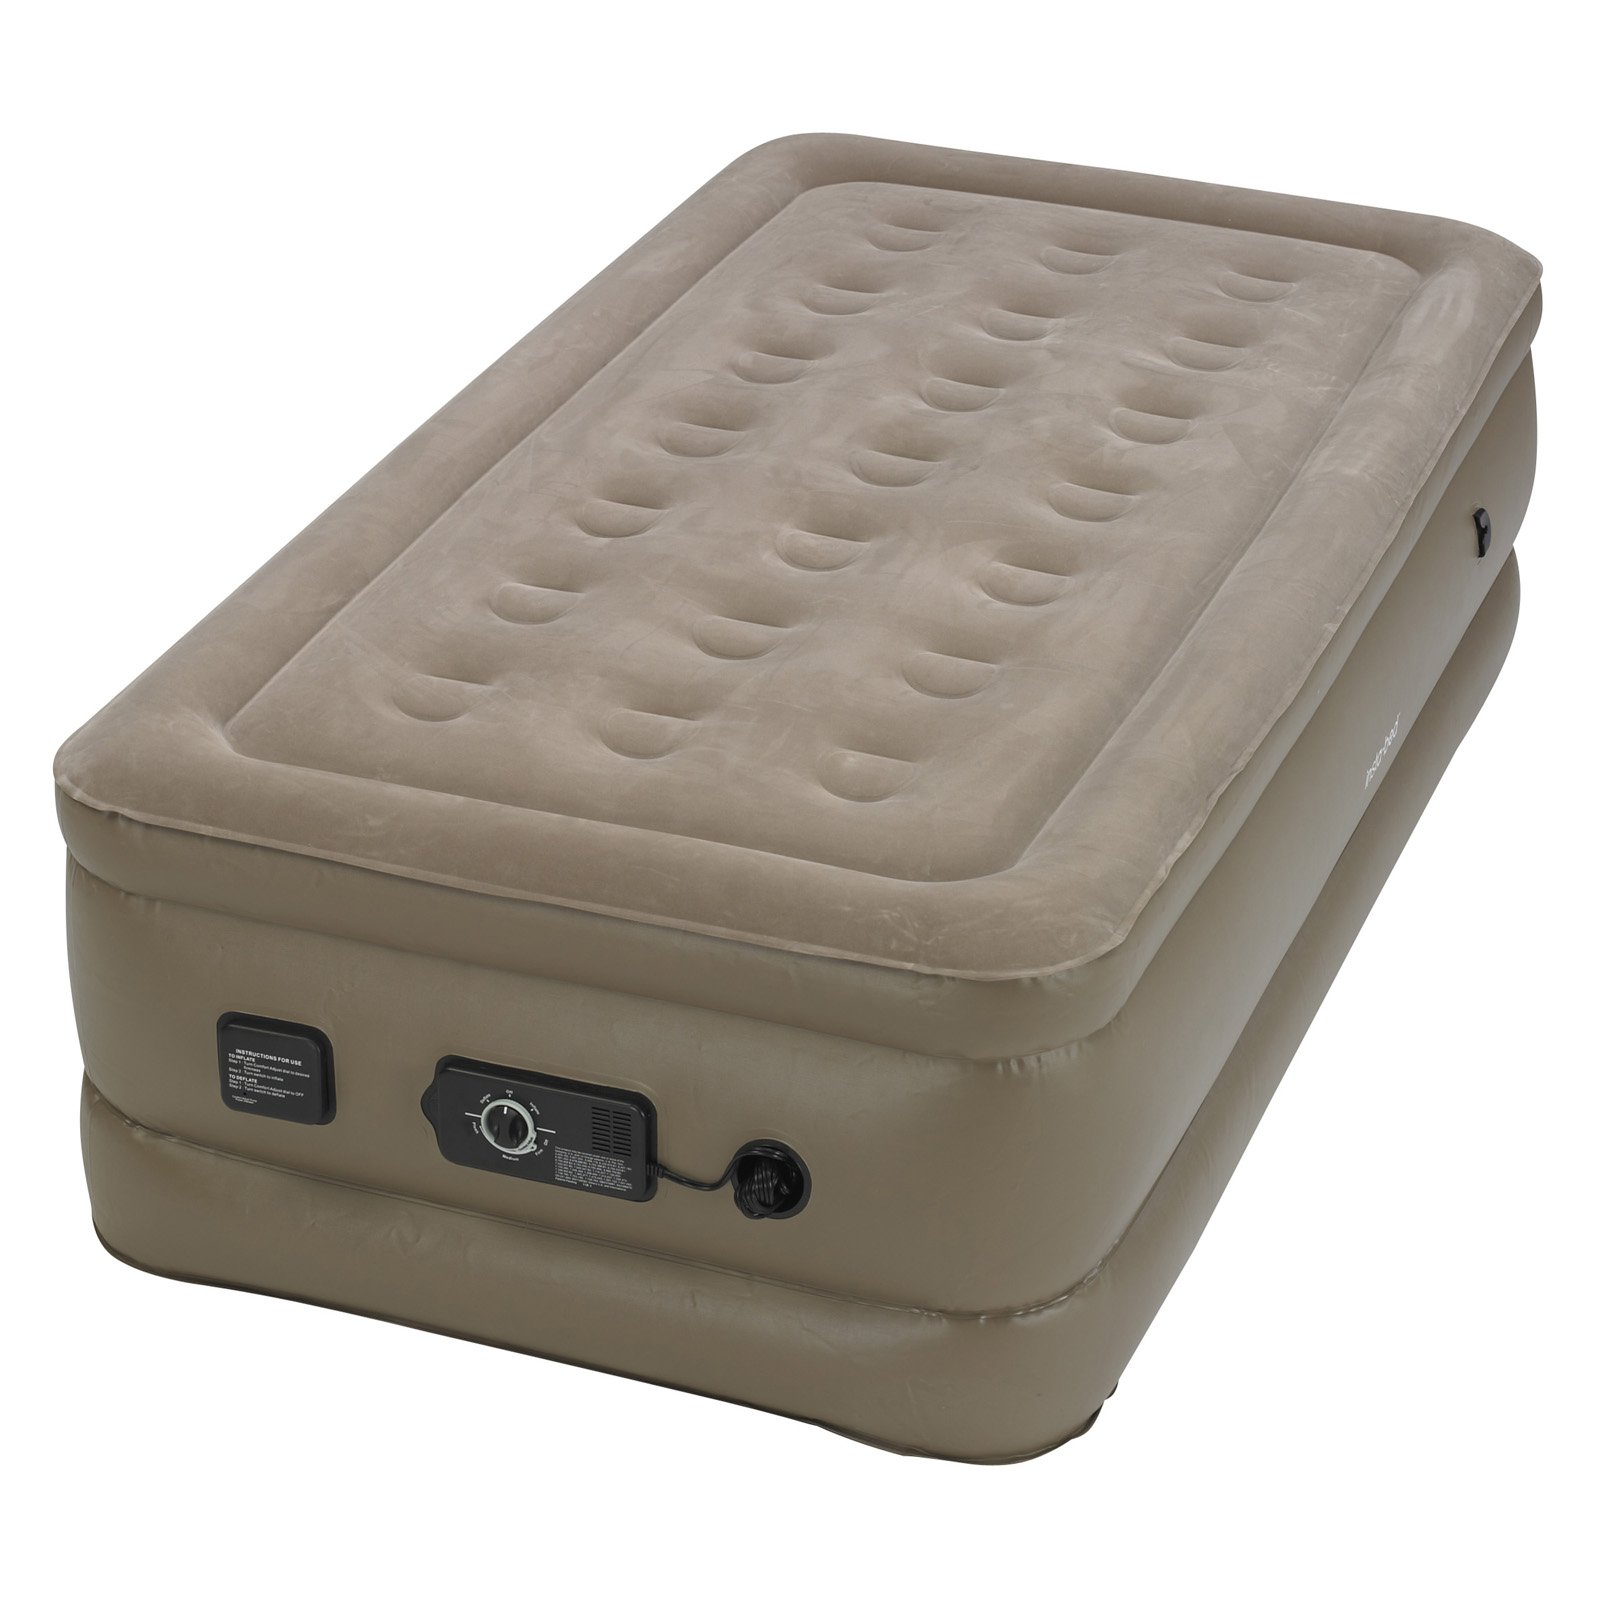 Insta-bed Raised Air Bed with NeverFlat AC Pump, Twin